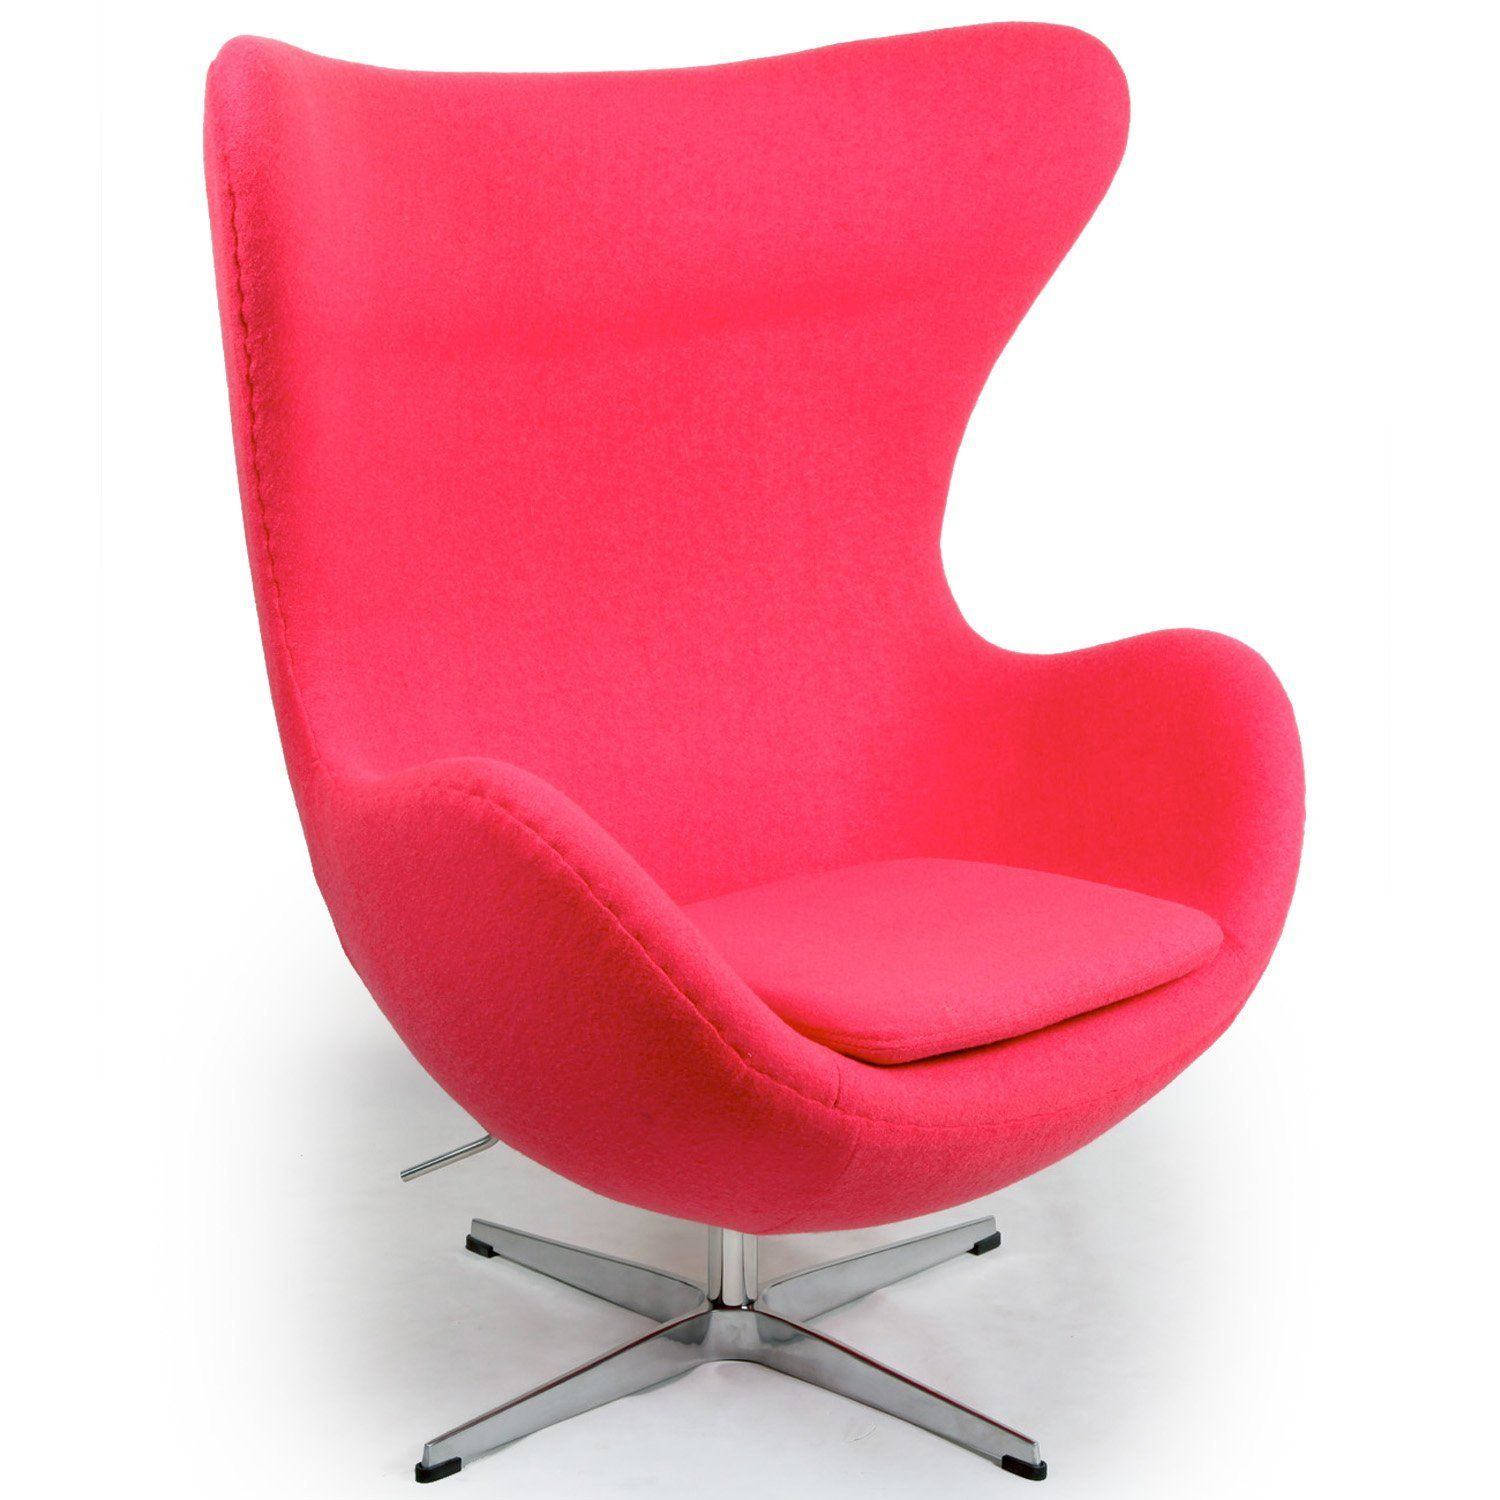 Teen Room Chairs funky chairs for teens | funky pink chairs for teen girls: kardiel